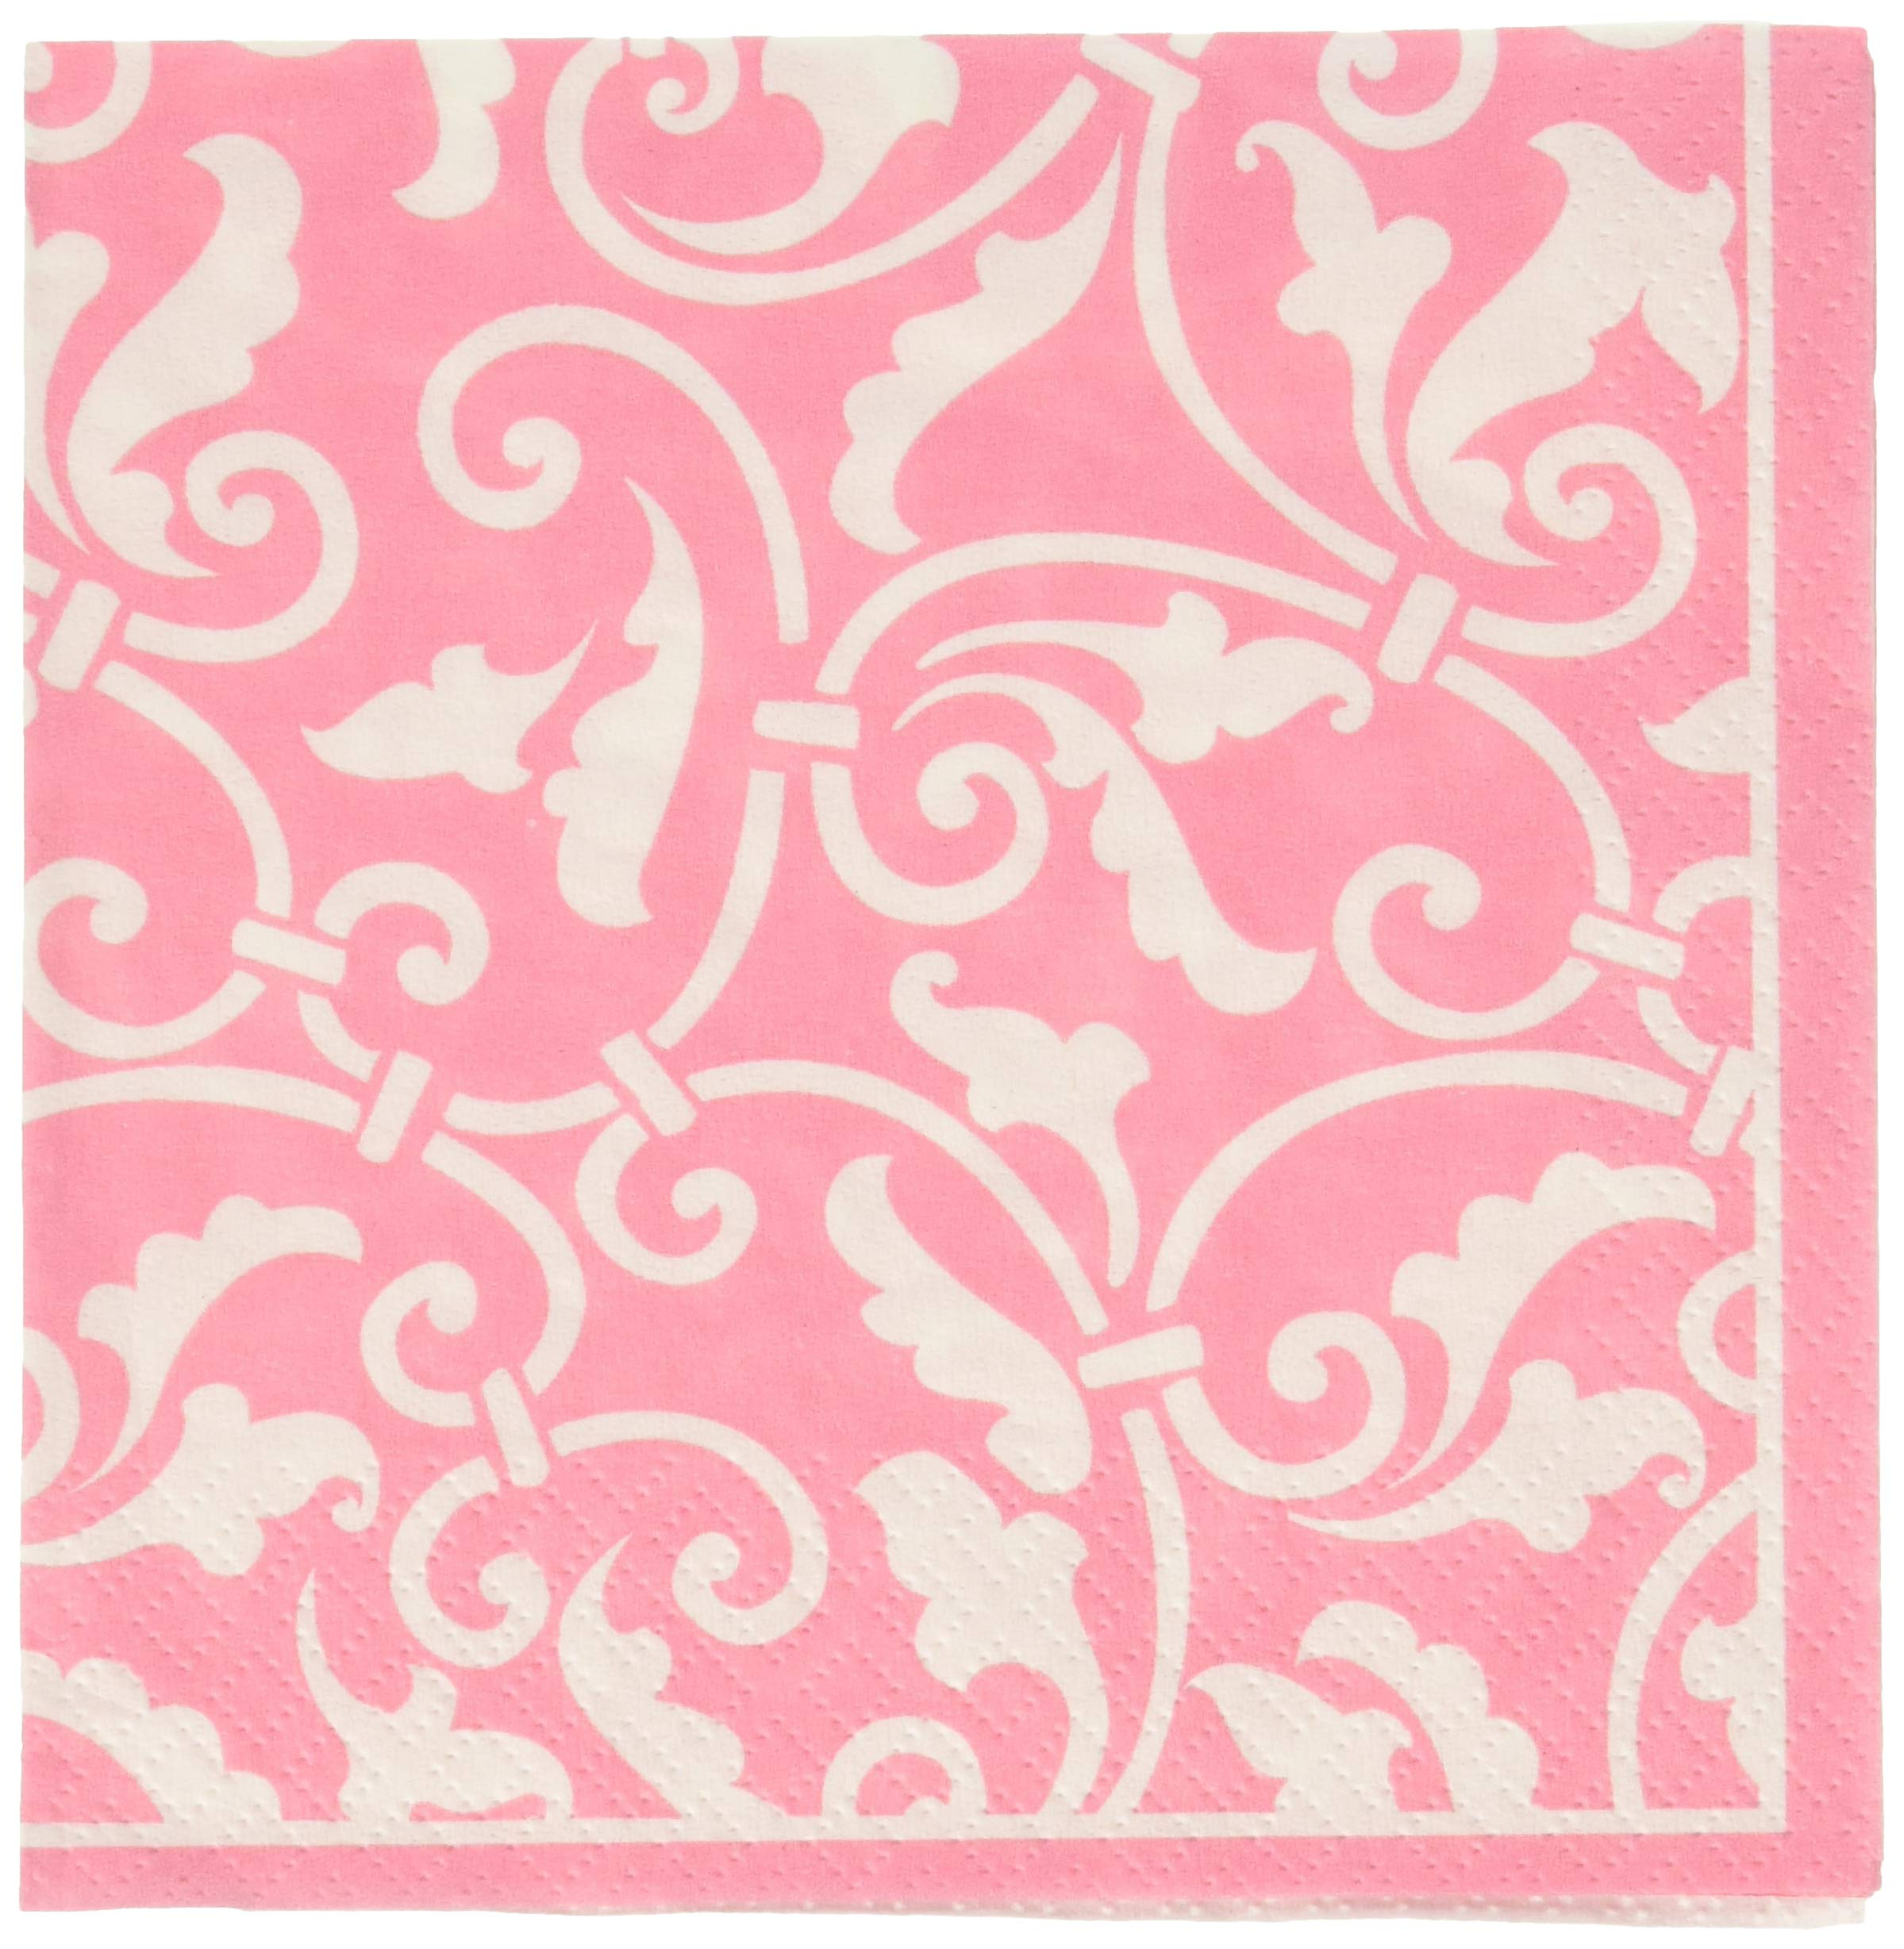 Amscan Ready Ornamental Scroll Beverage Childrens Party Napkins (Pack 16), Pink, 5'' x 5''